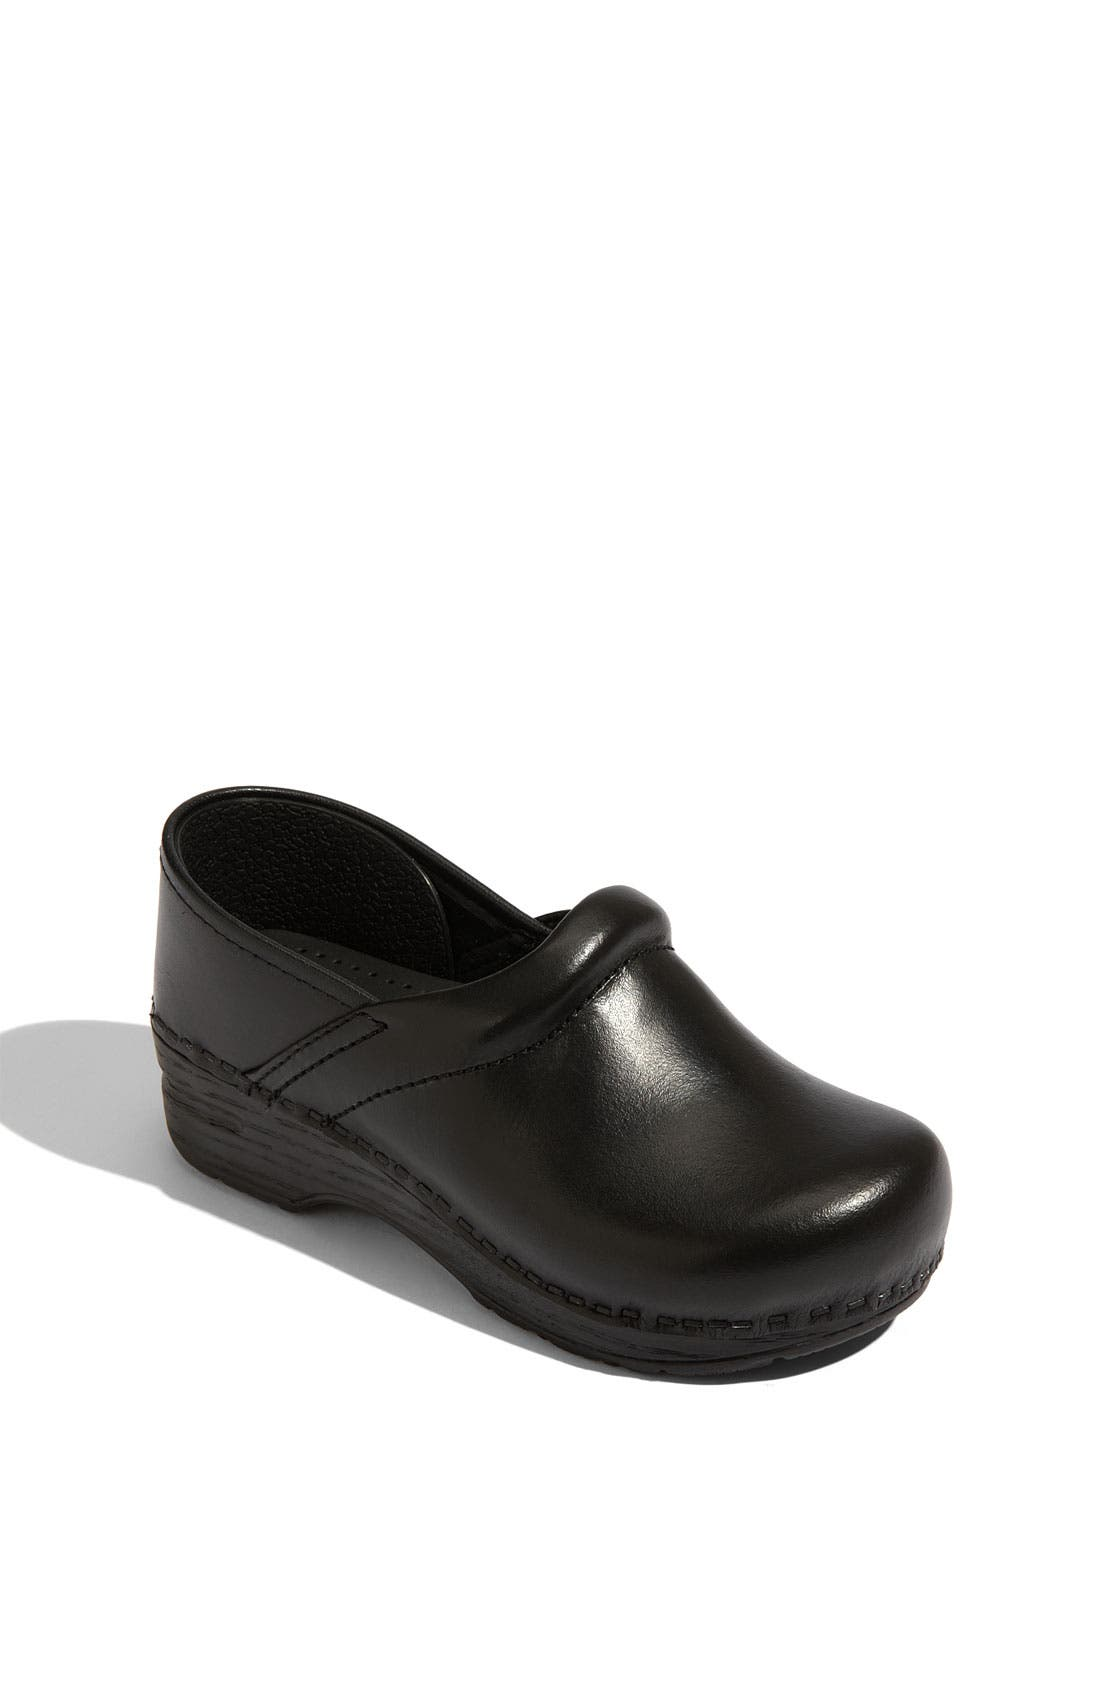 Main Image - Dansko 'Gitte' Clog (Toddler & Little Kid)